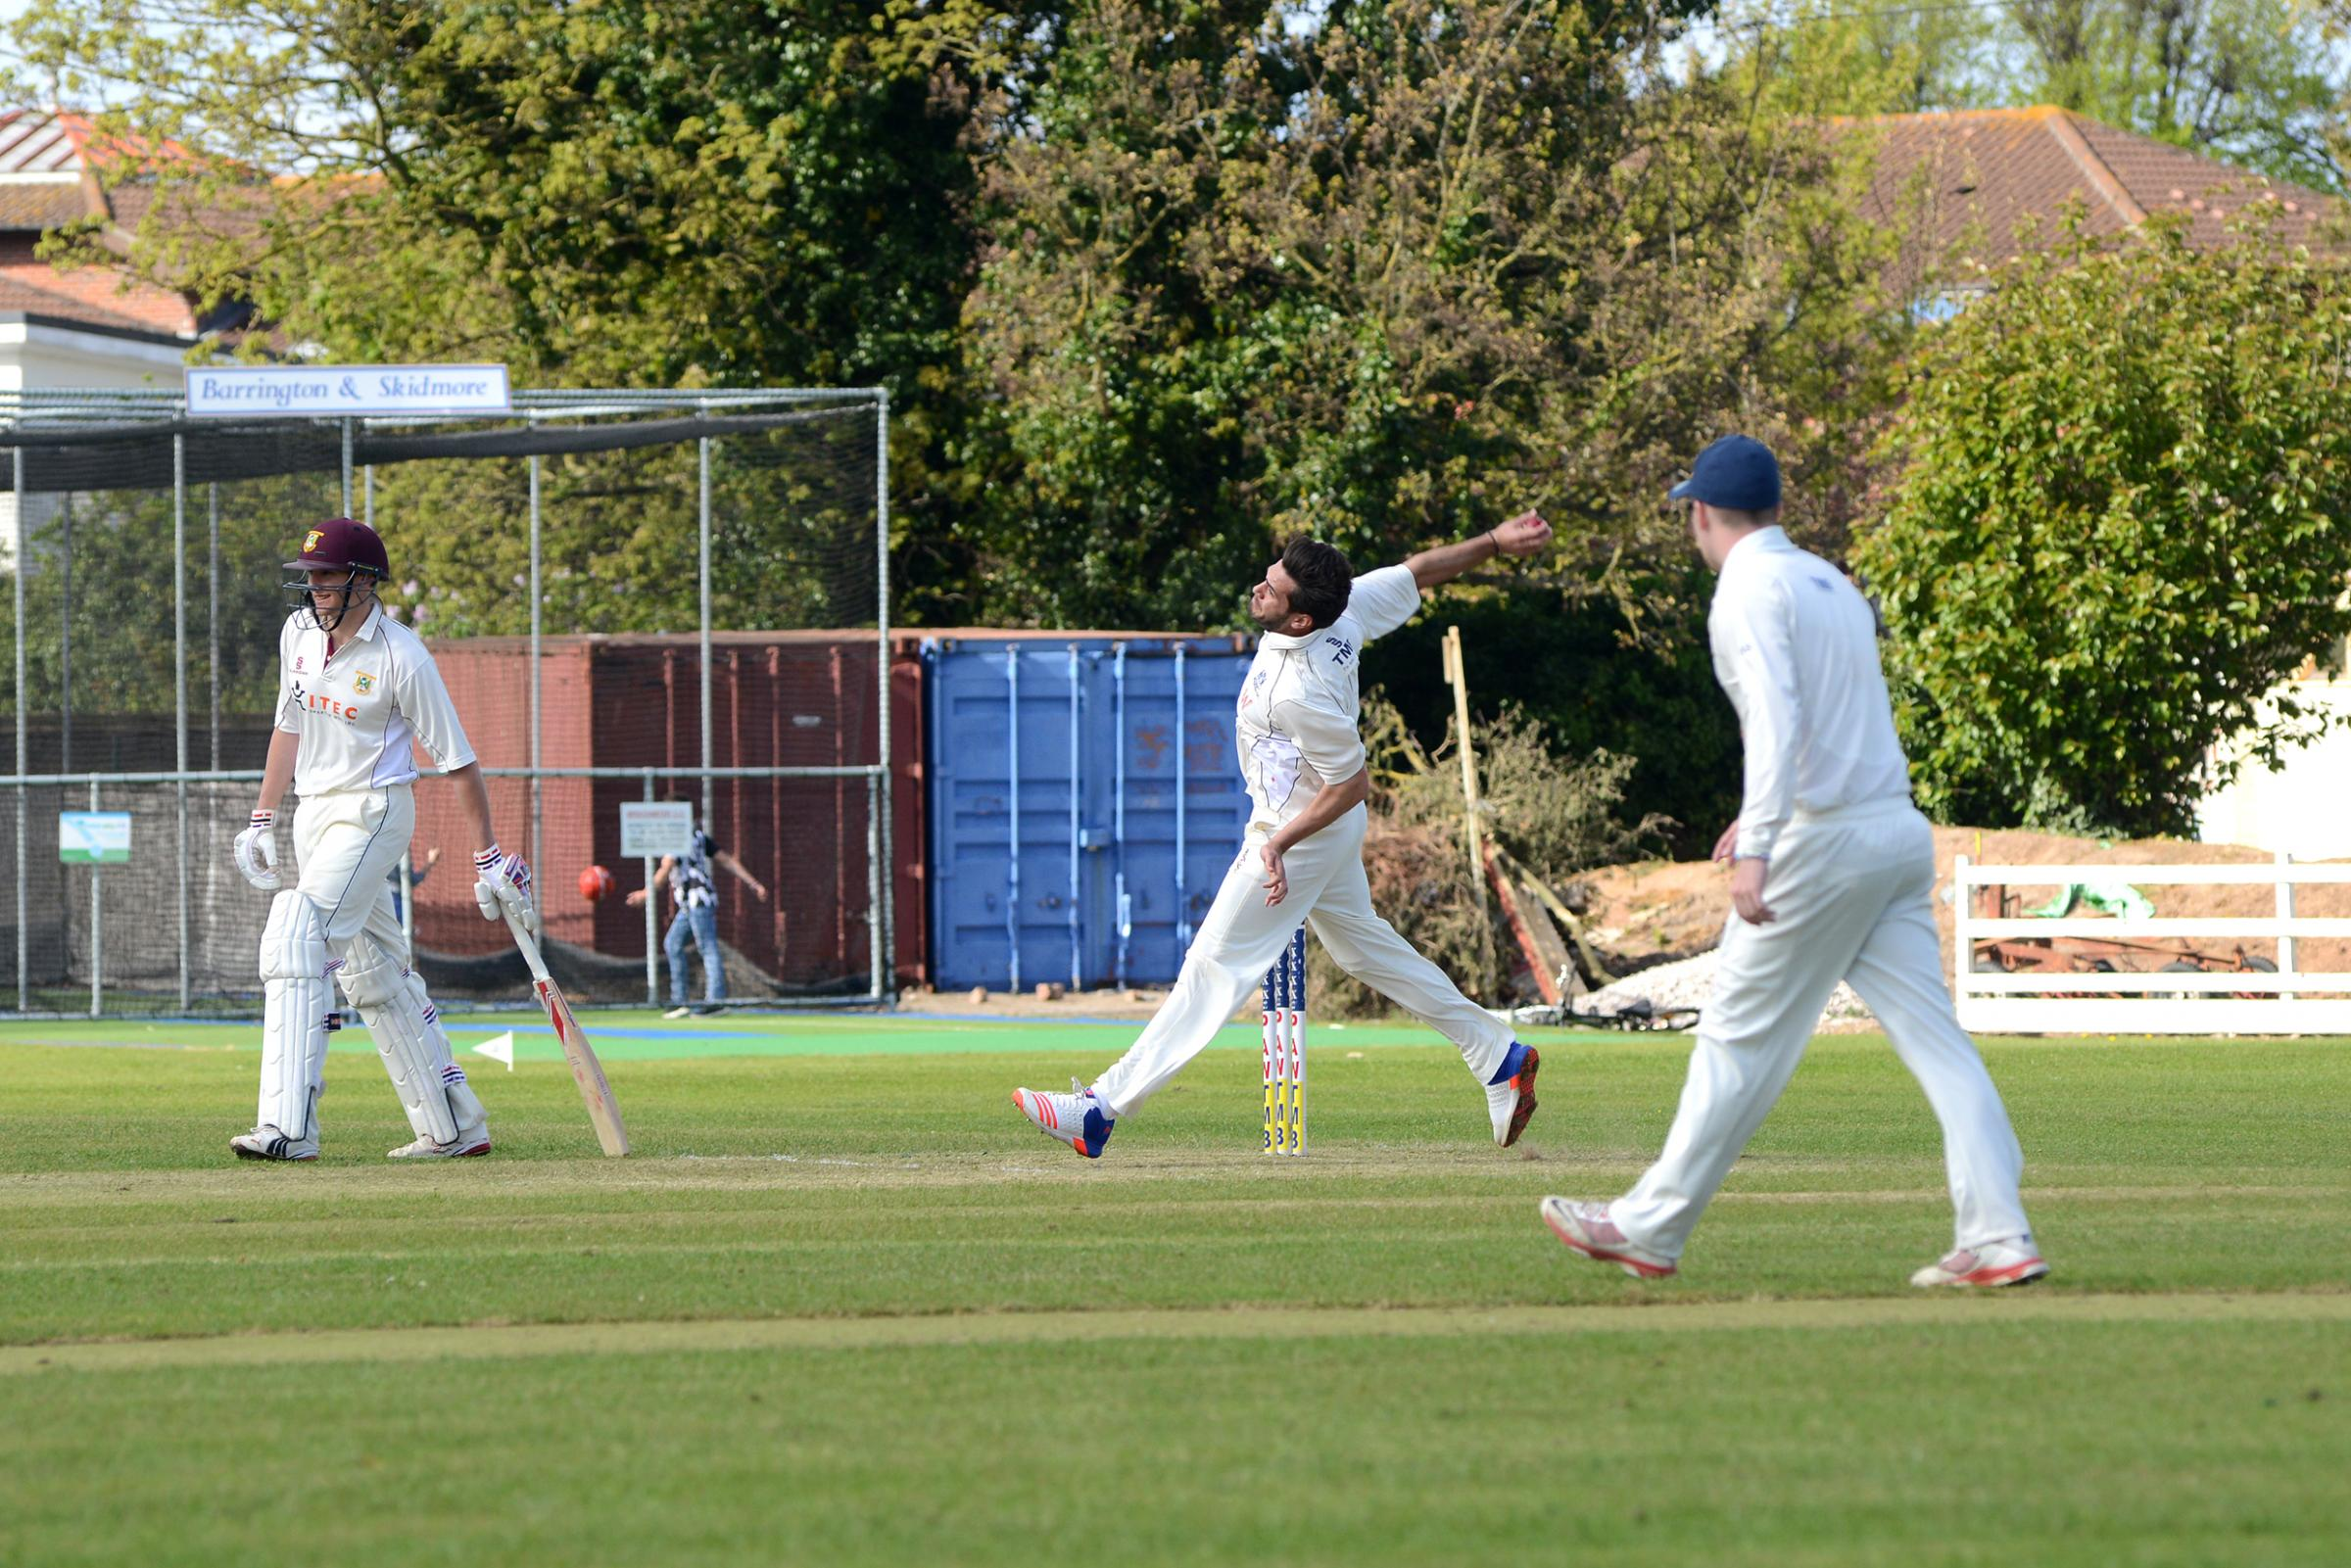 TOP SCORE: Chris Skidmore of Bridgwater Cricket Club.